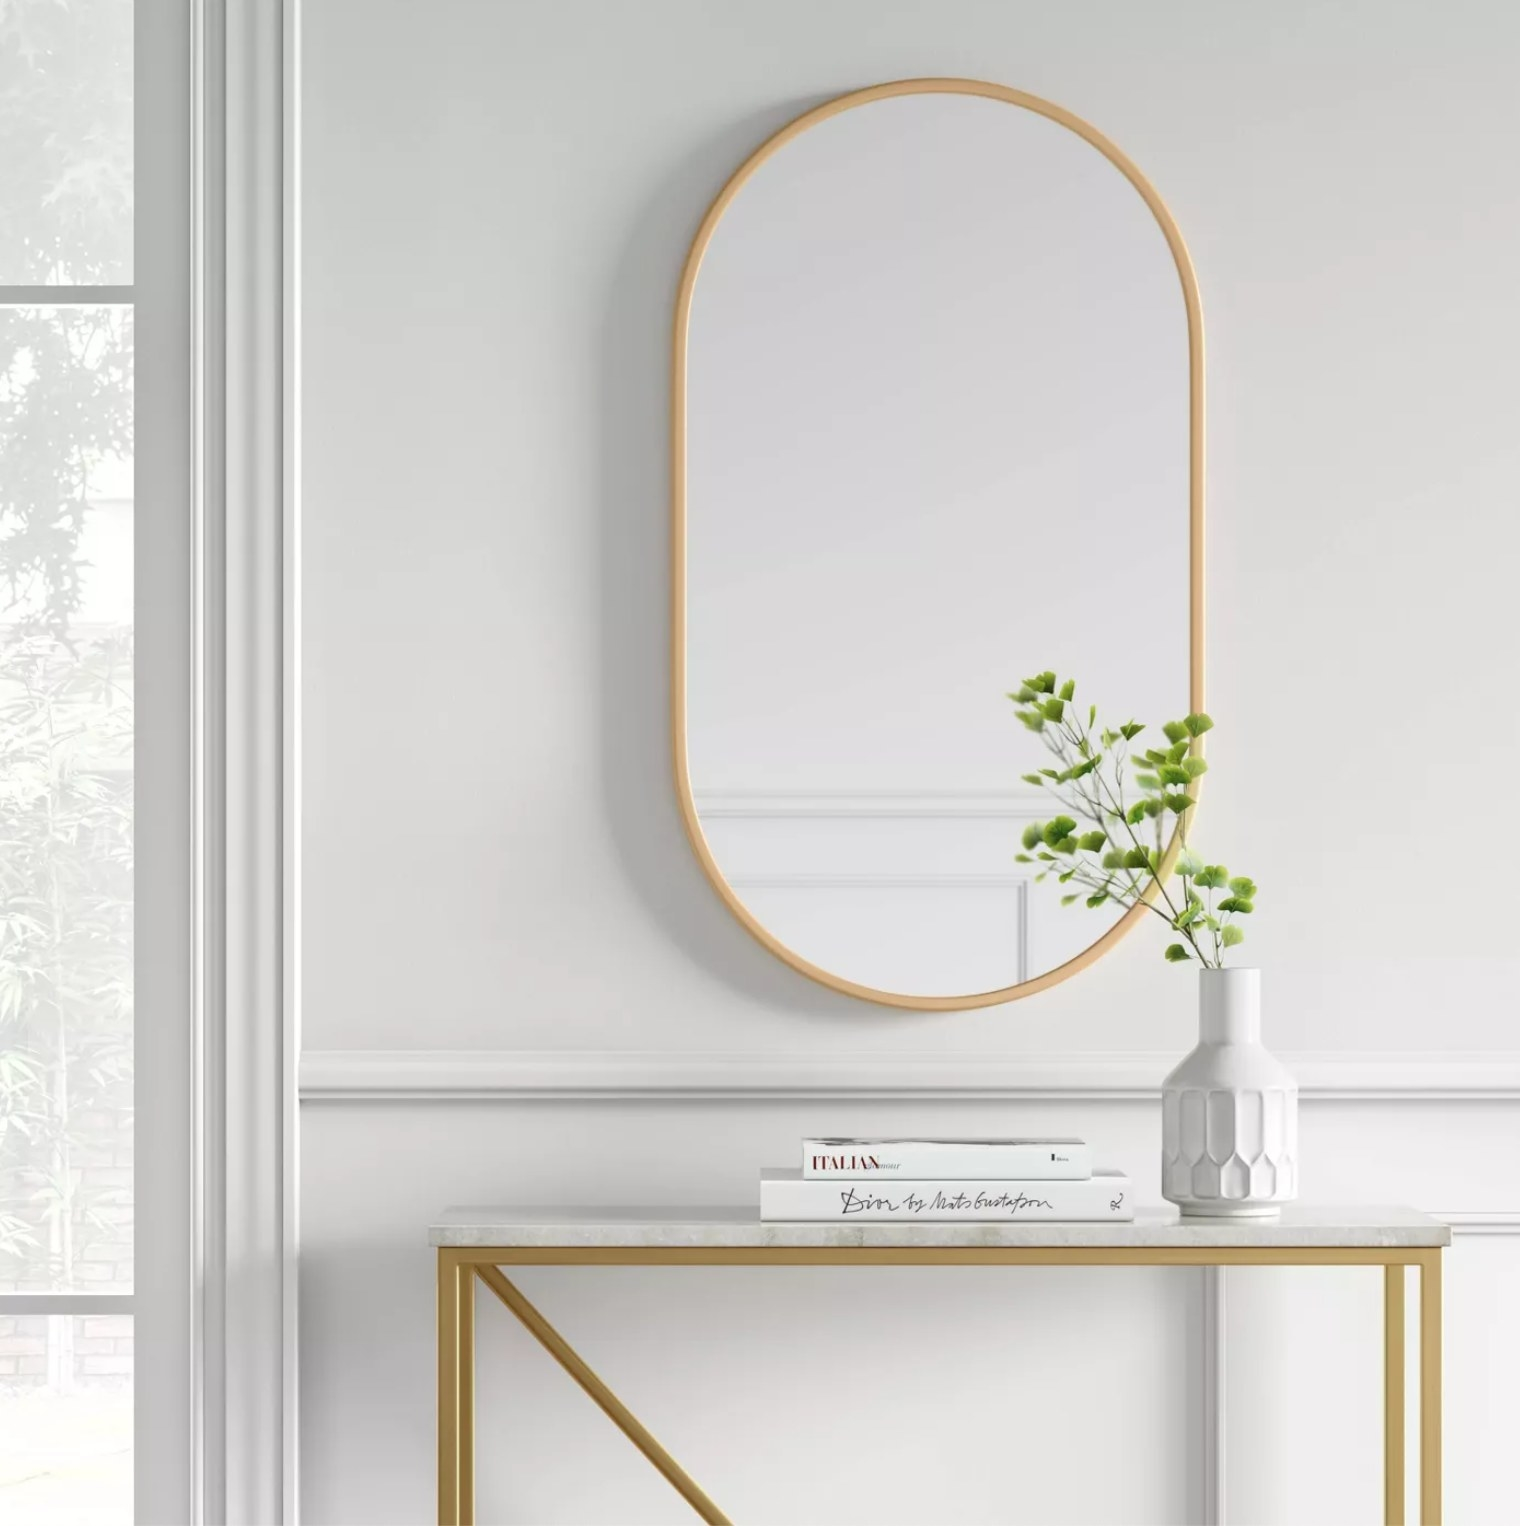 The gold-rimmed mirror hanging above a table with books and a plant